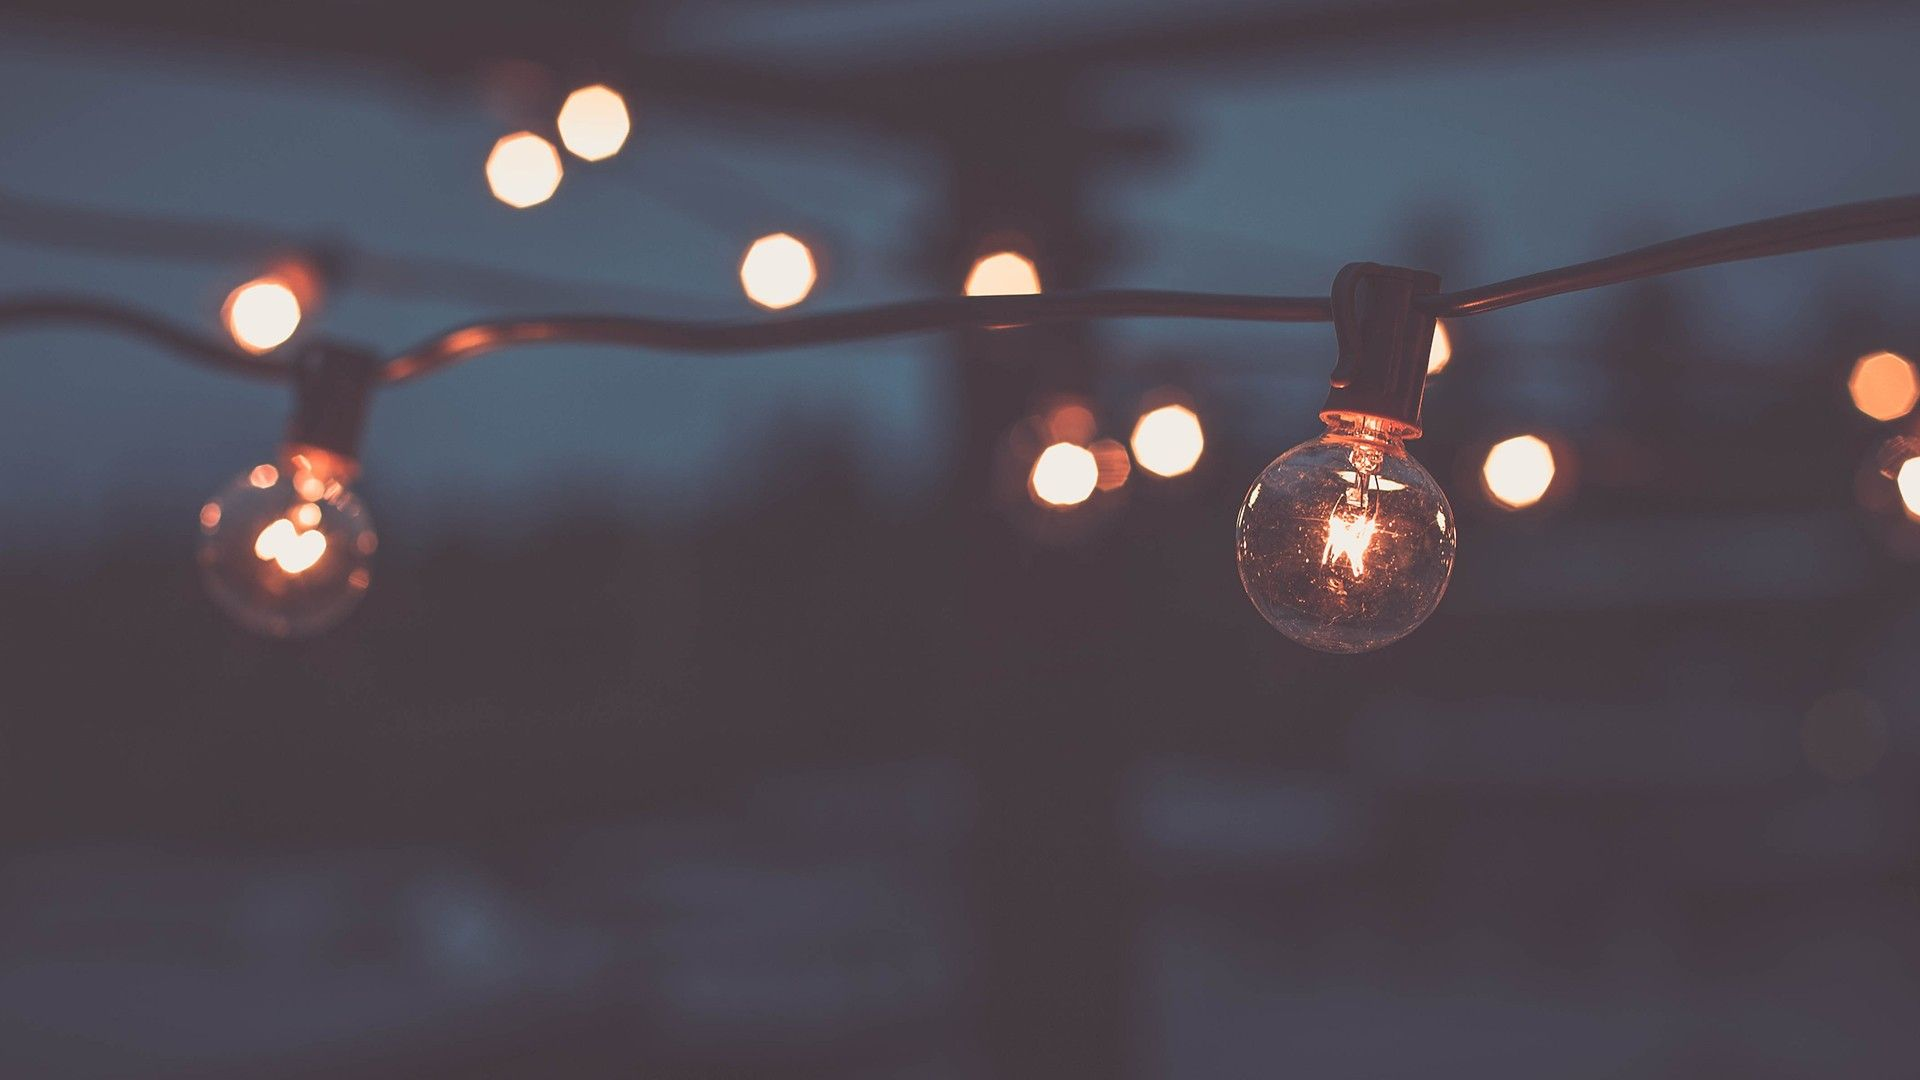 Bokeh Light Bulbs Wallpaper Meh Ro Desktop Wallpapers Tumblr Aesthetic Desktop Wallpaper Desktop Wallpapers Backgrounds